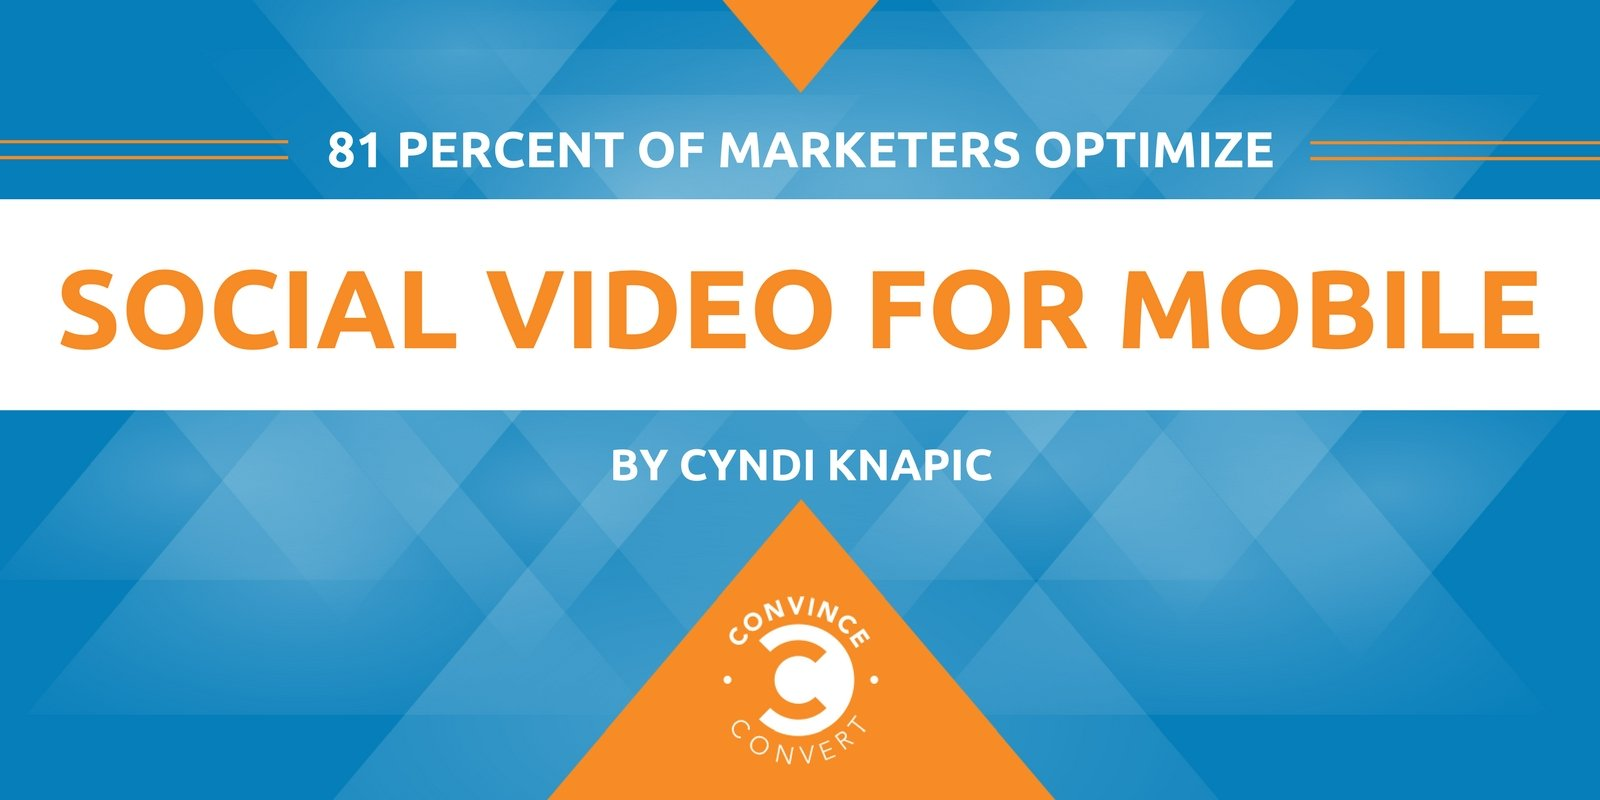 81 Percent of Marketers Optimize Social Video for Mobile [Infographic]